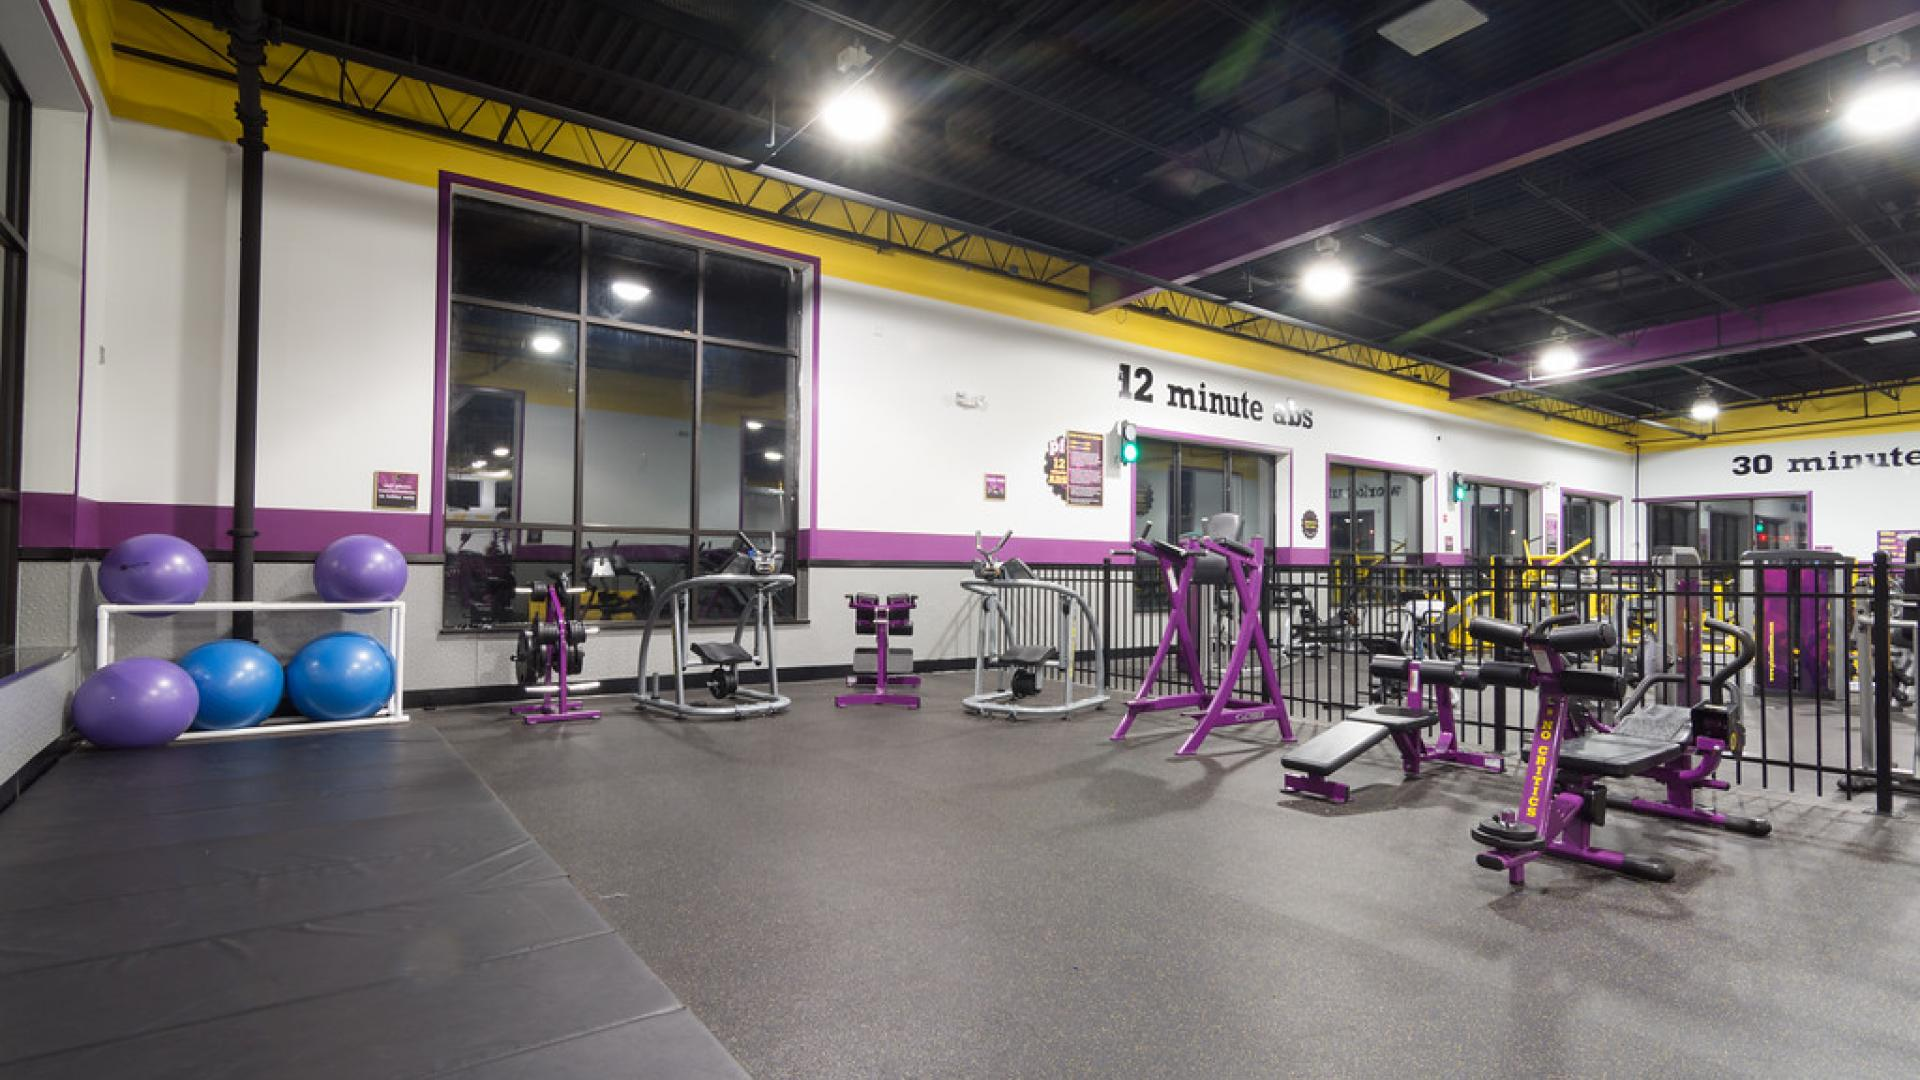 Gym in Morrisville PA  229 Plaza Blvd  Planet Fitness